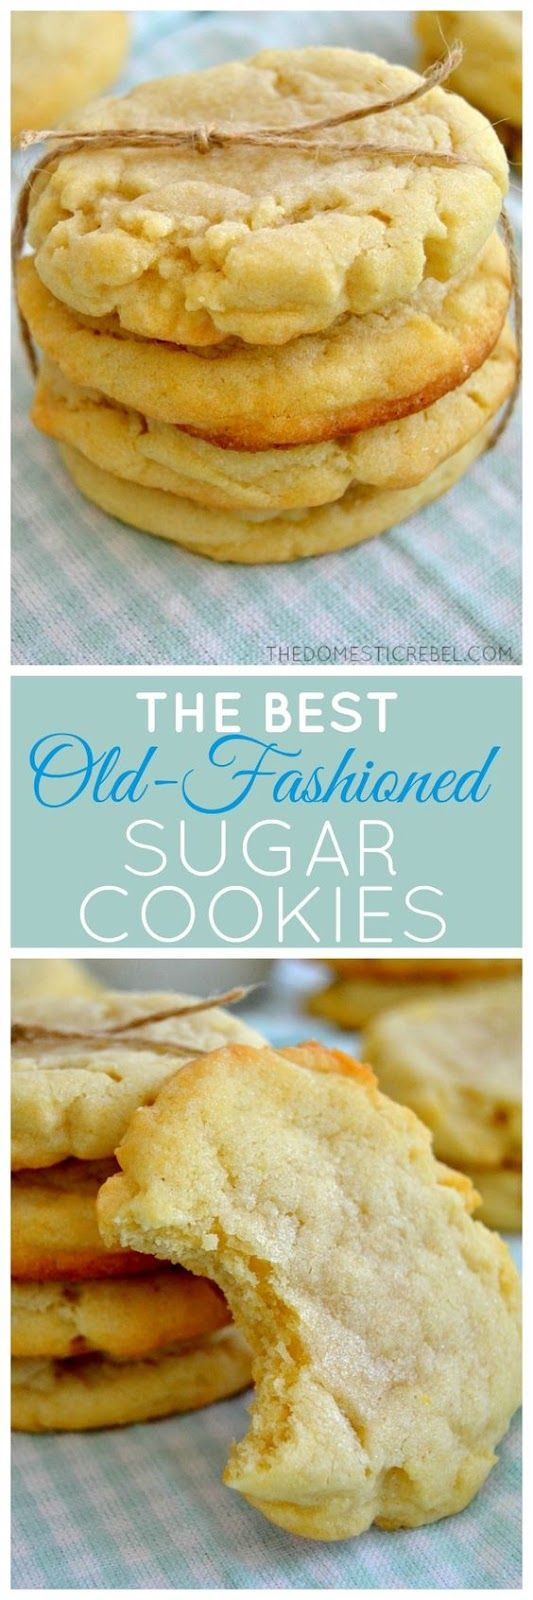 Ingredients 2 sticks butter, softened 1 cup oil 1 cup white sugar 1 cup powdered sugar 1 Tbsp vanilla 2 eggs 1 tsp baki...